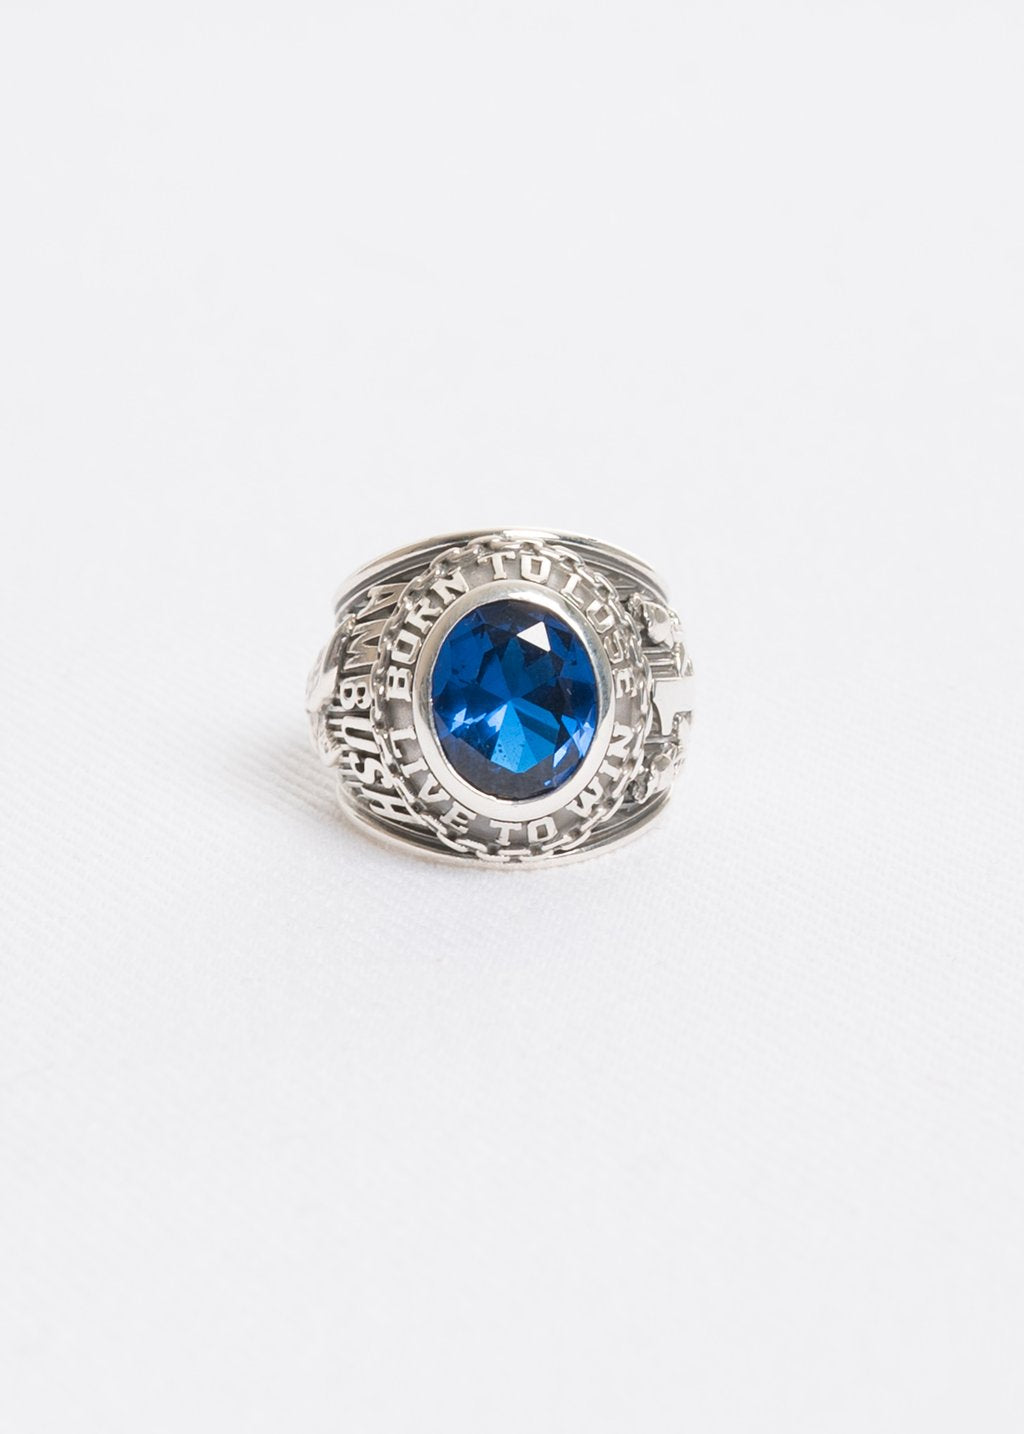 Silver and Blue Class Ring